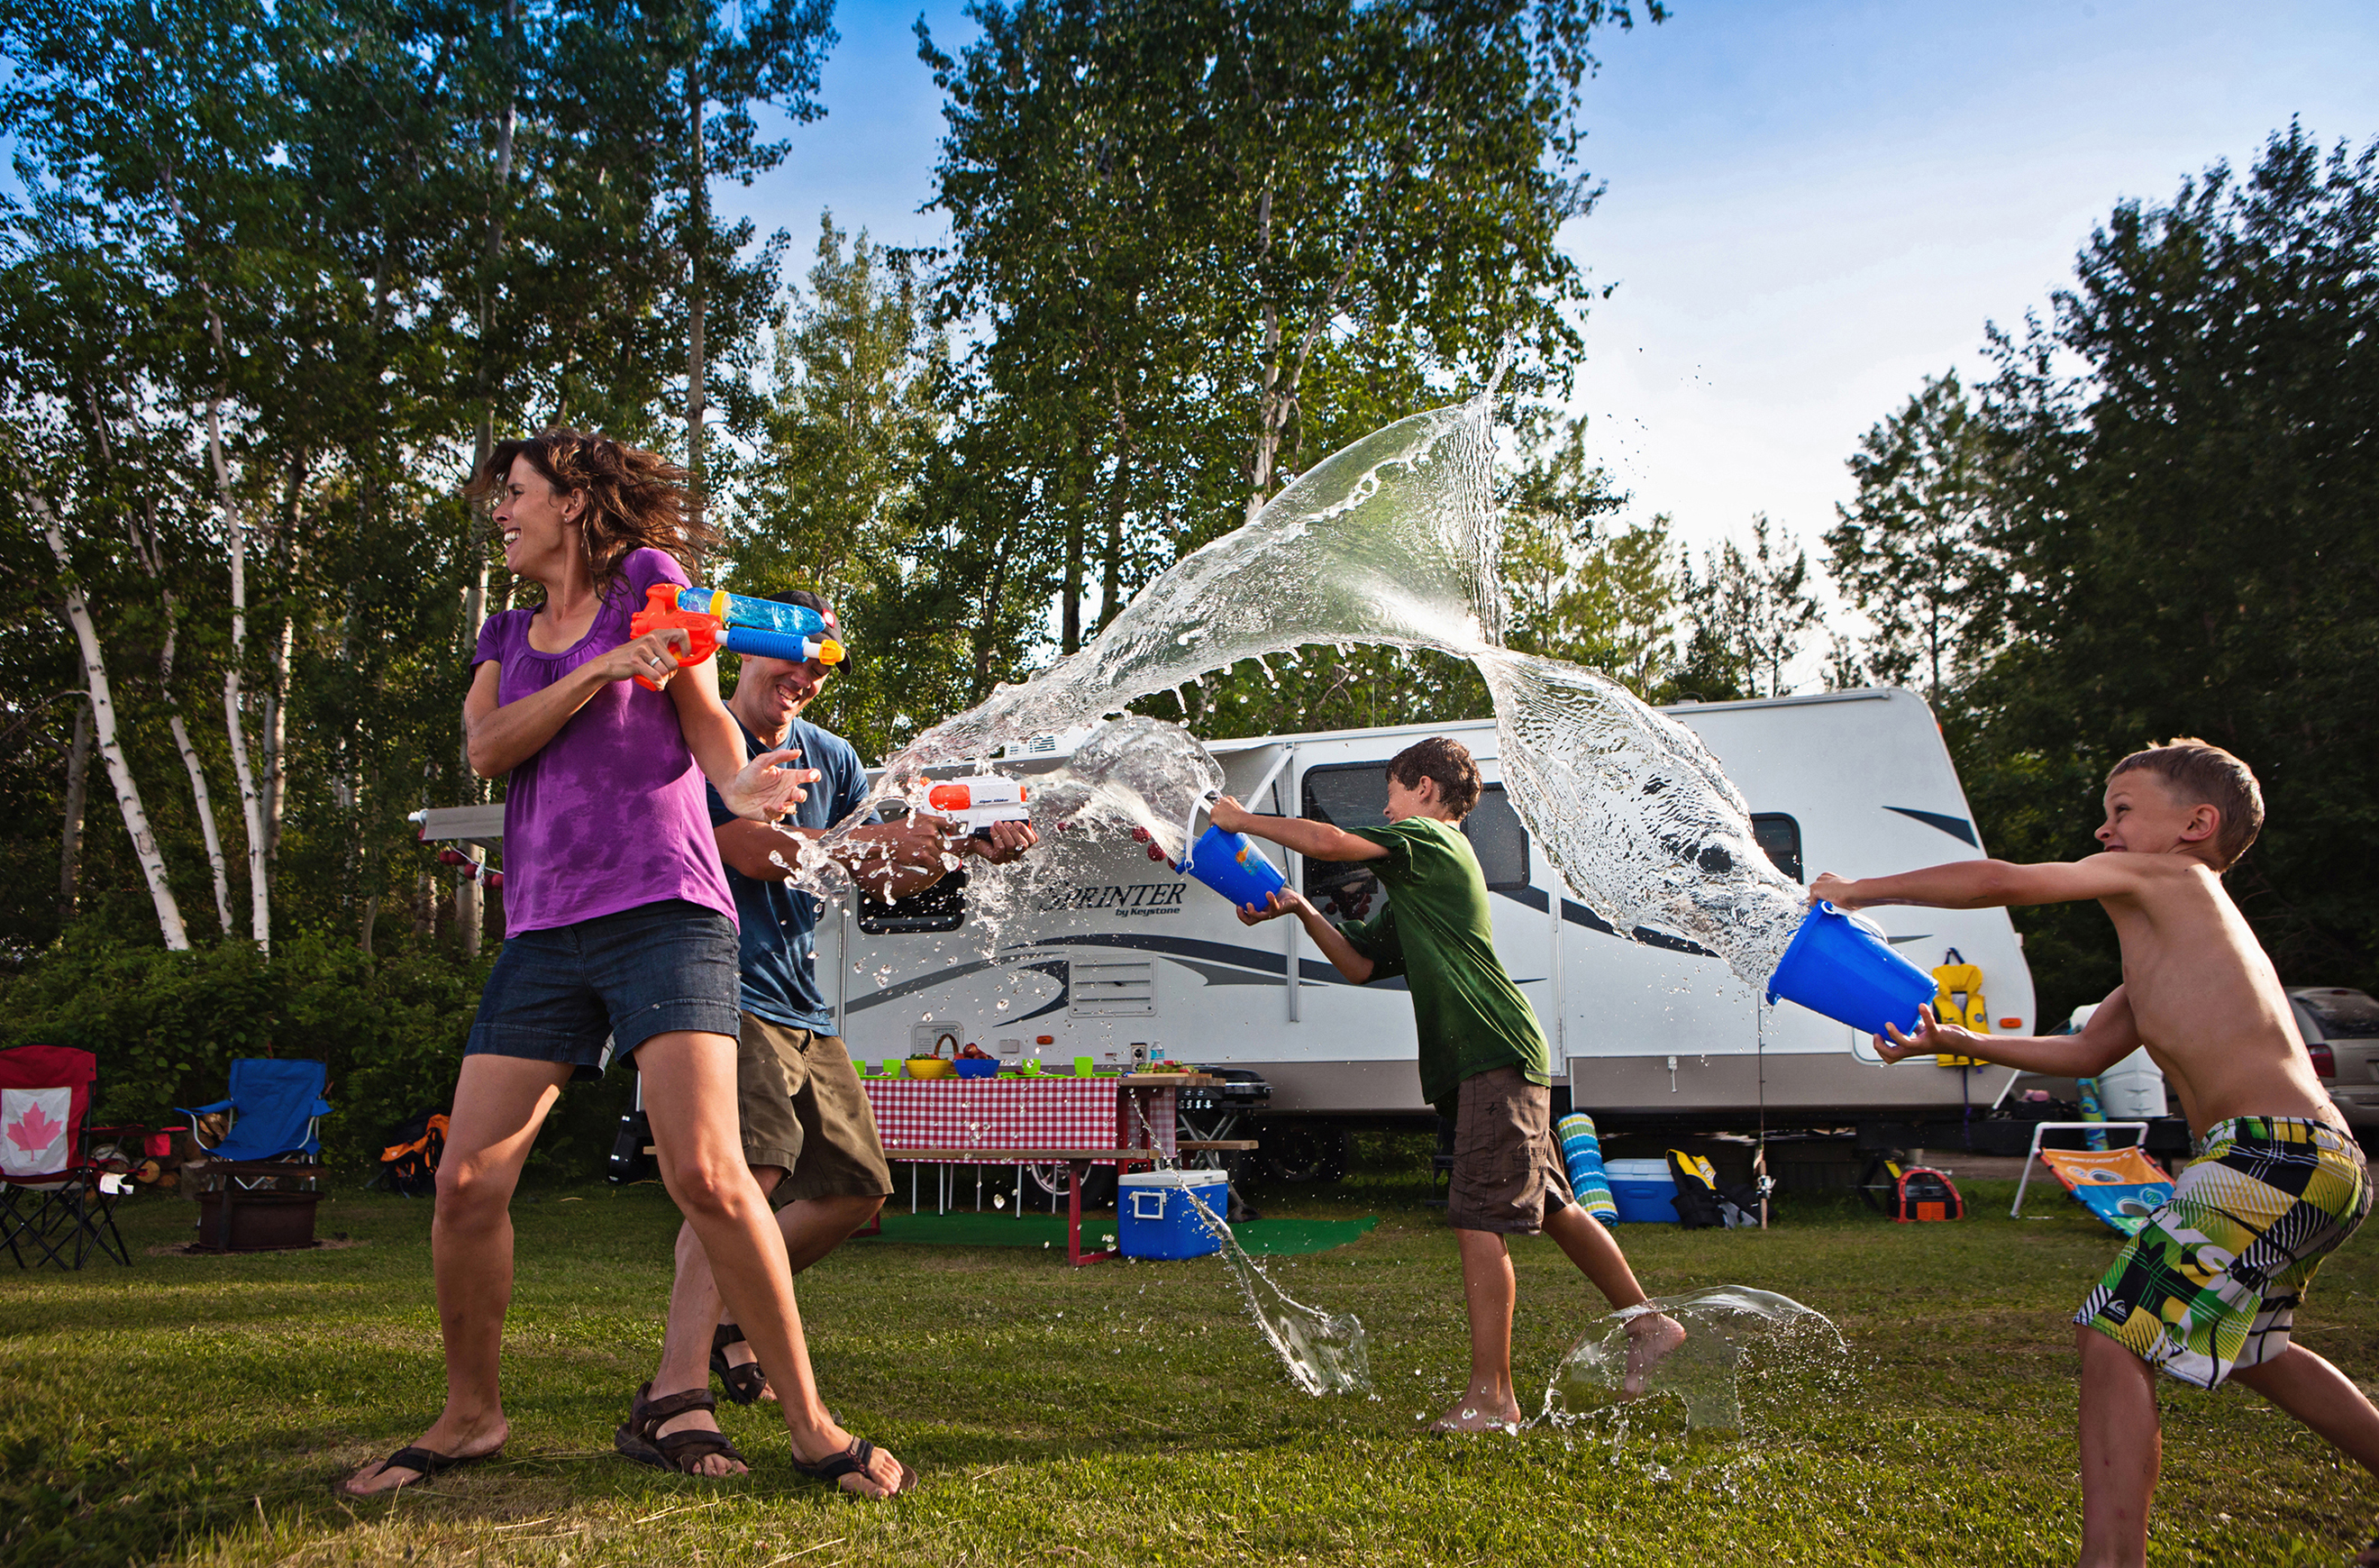 Tobin Lake Water Fight Family Camping